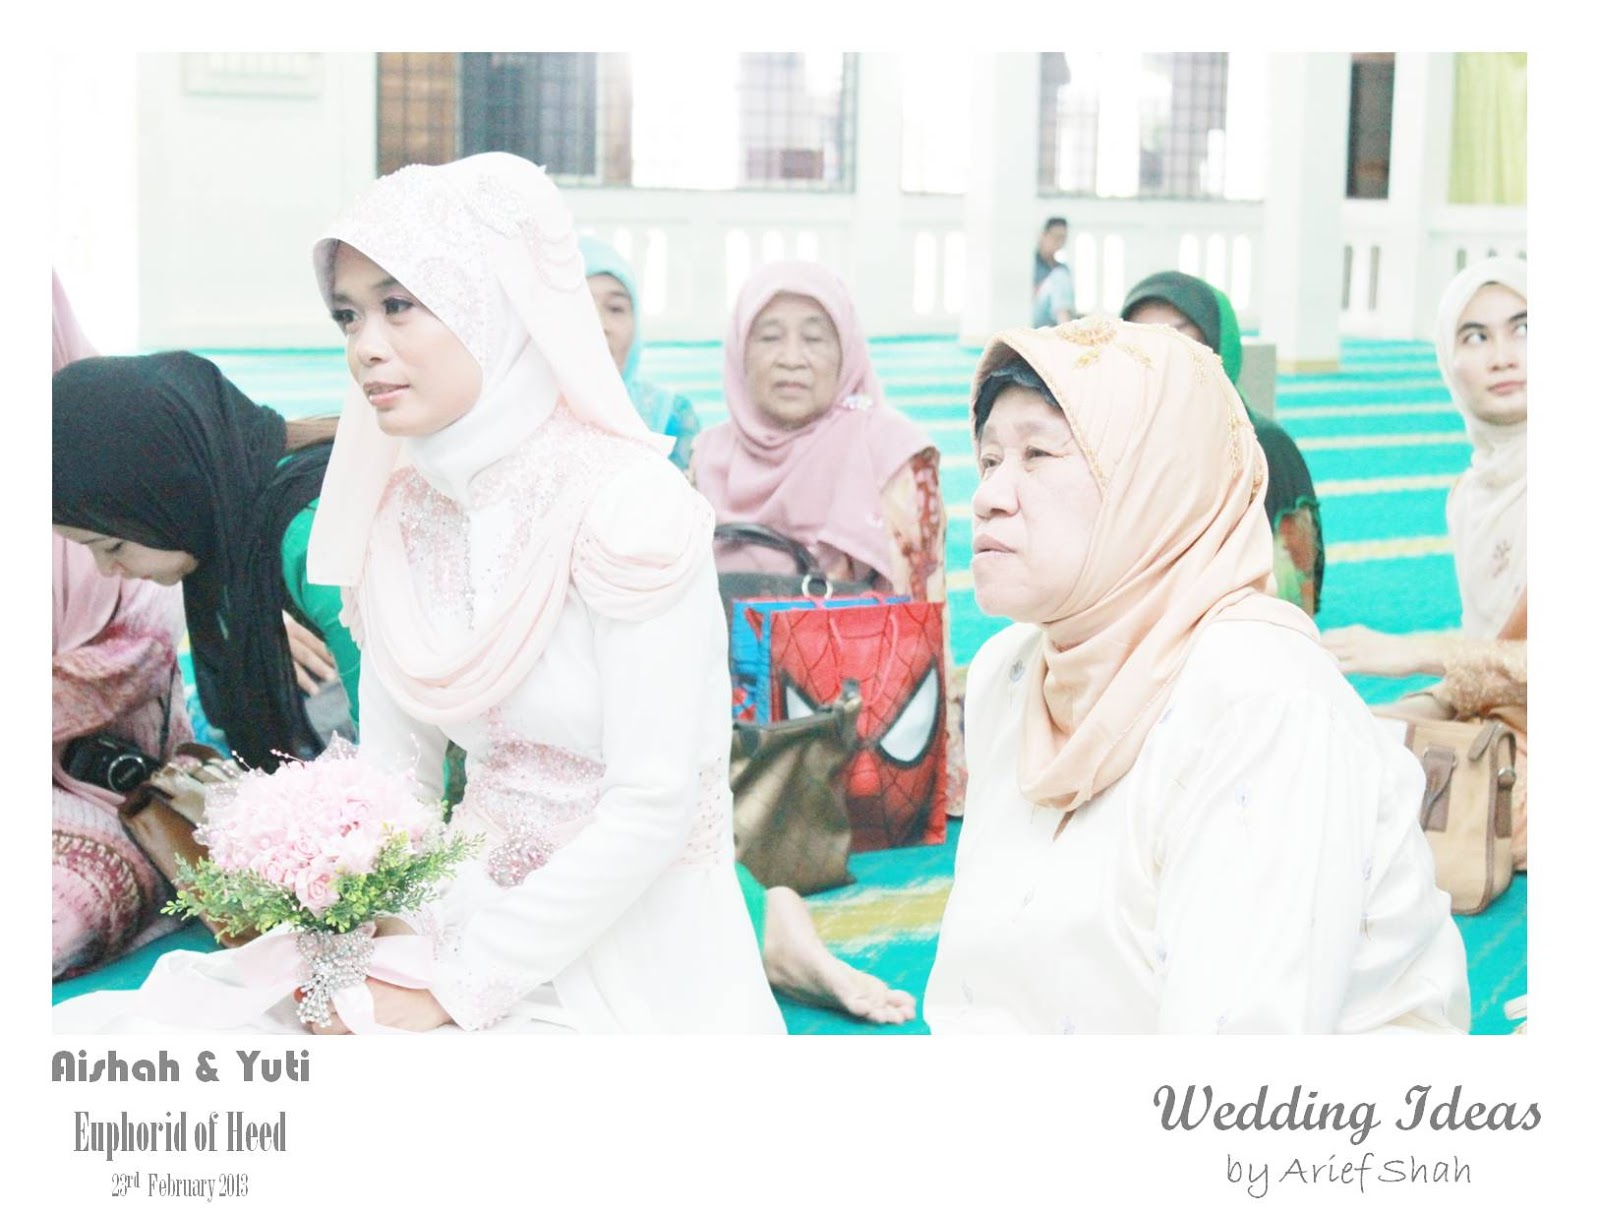 wedding ideas by arief shah wedding ideas february 2013 28074